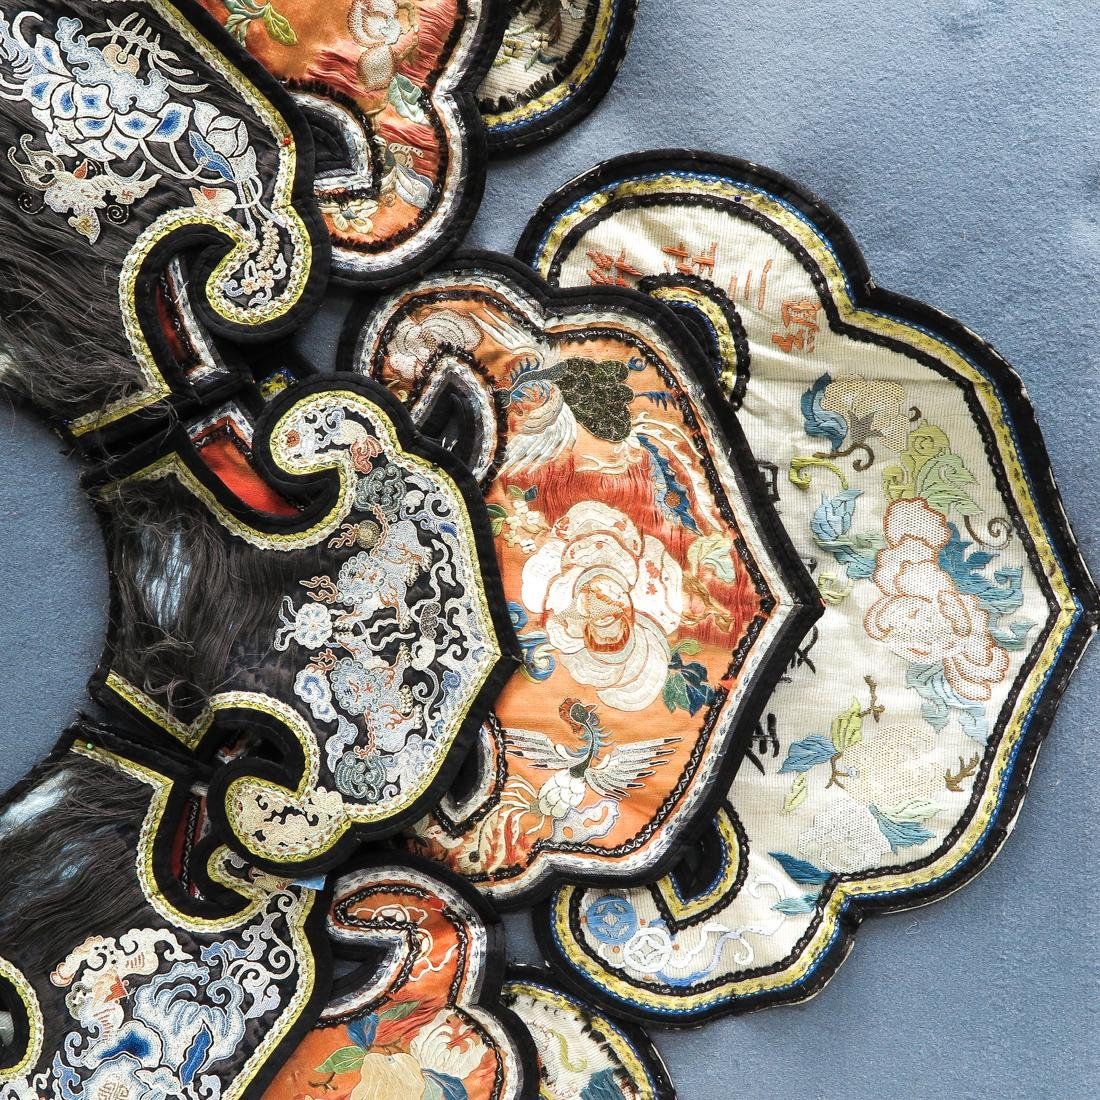 Lot of Chinese Silk Embroidered Textiles - 2